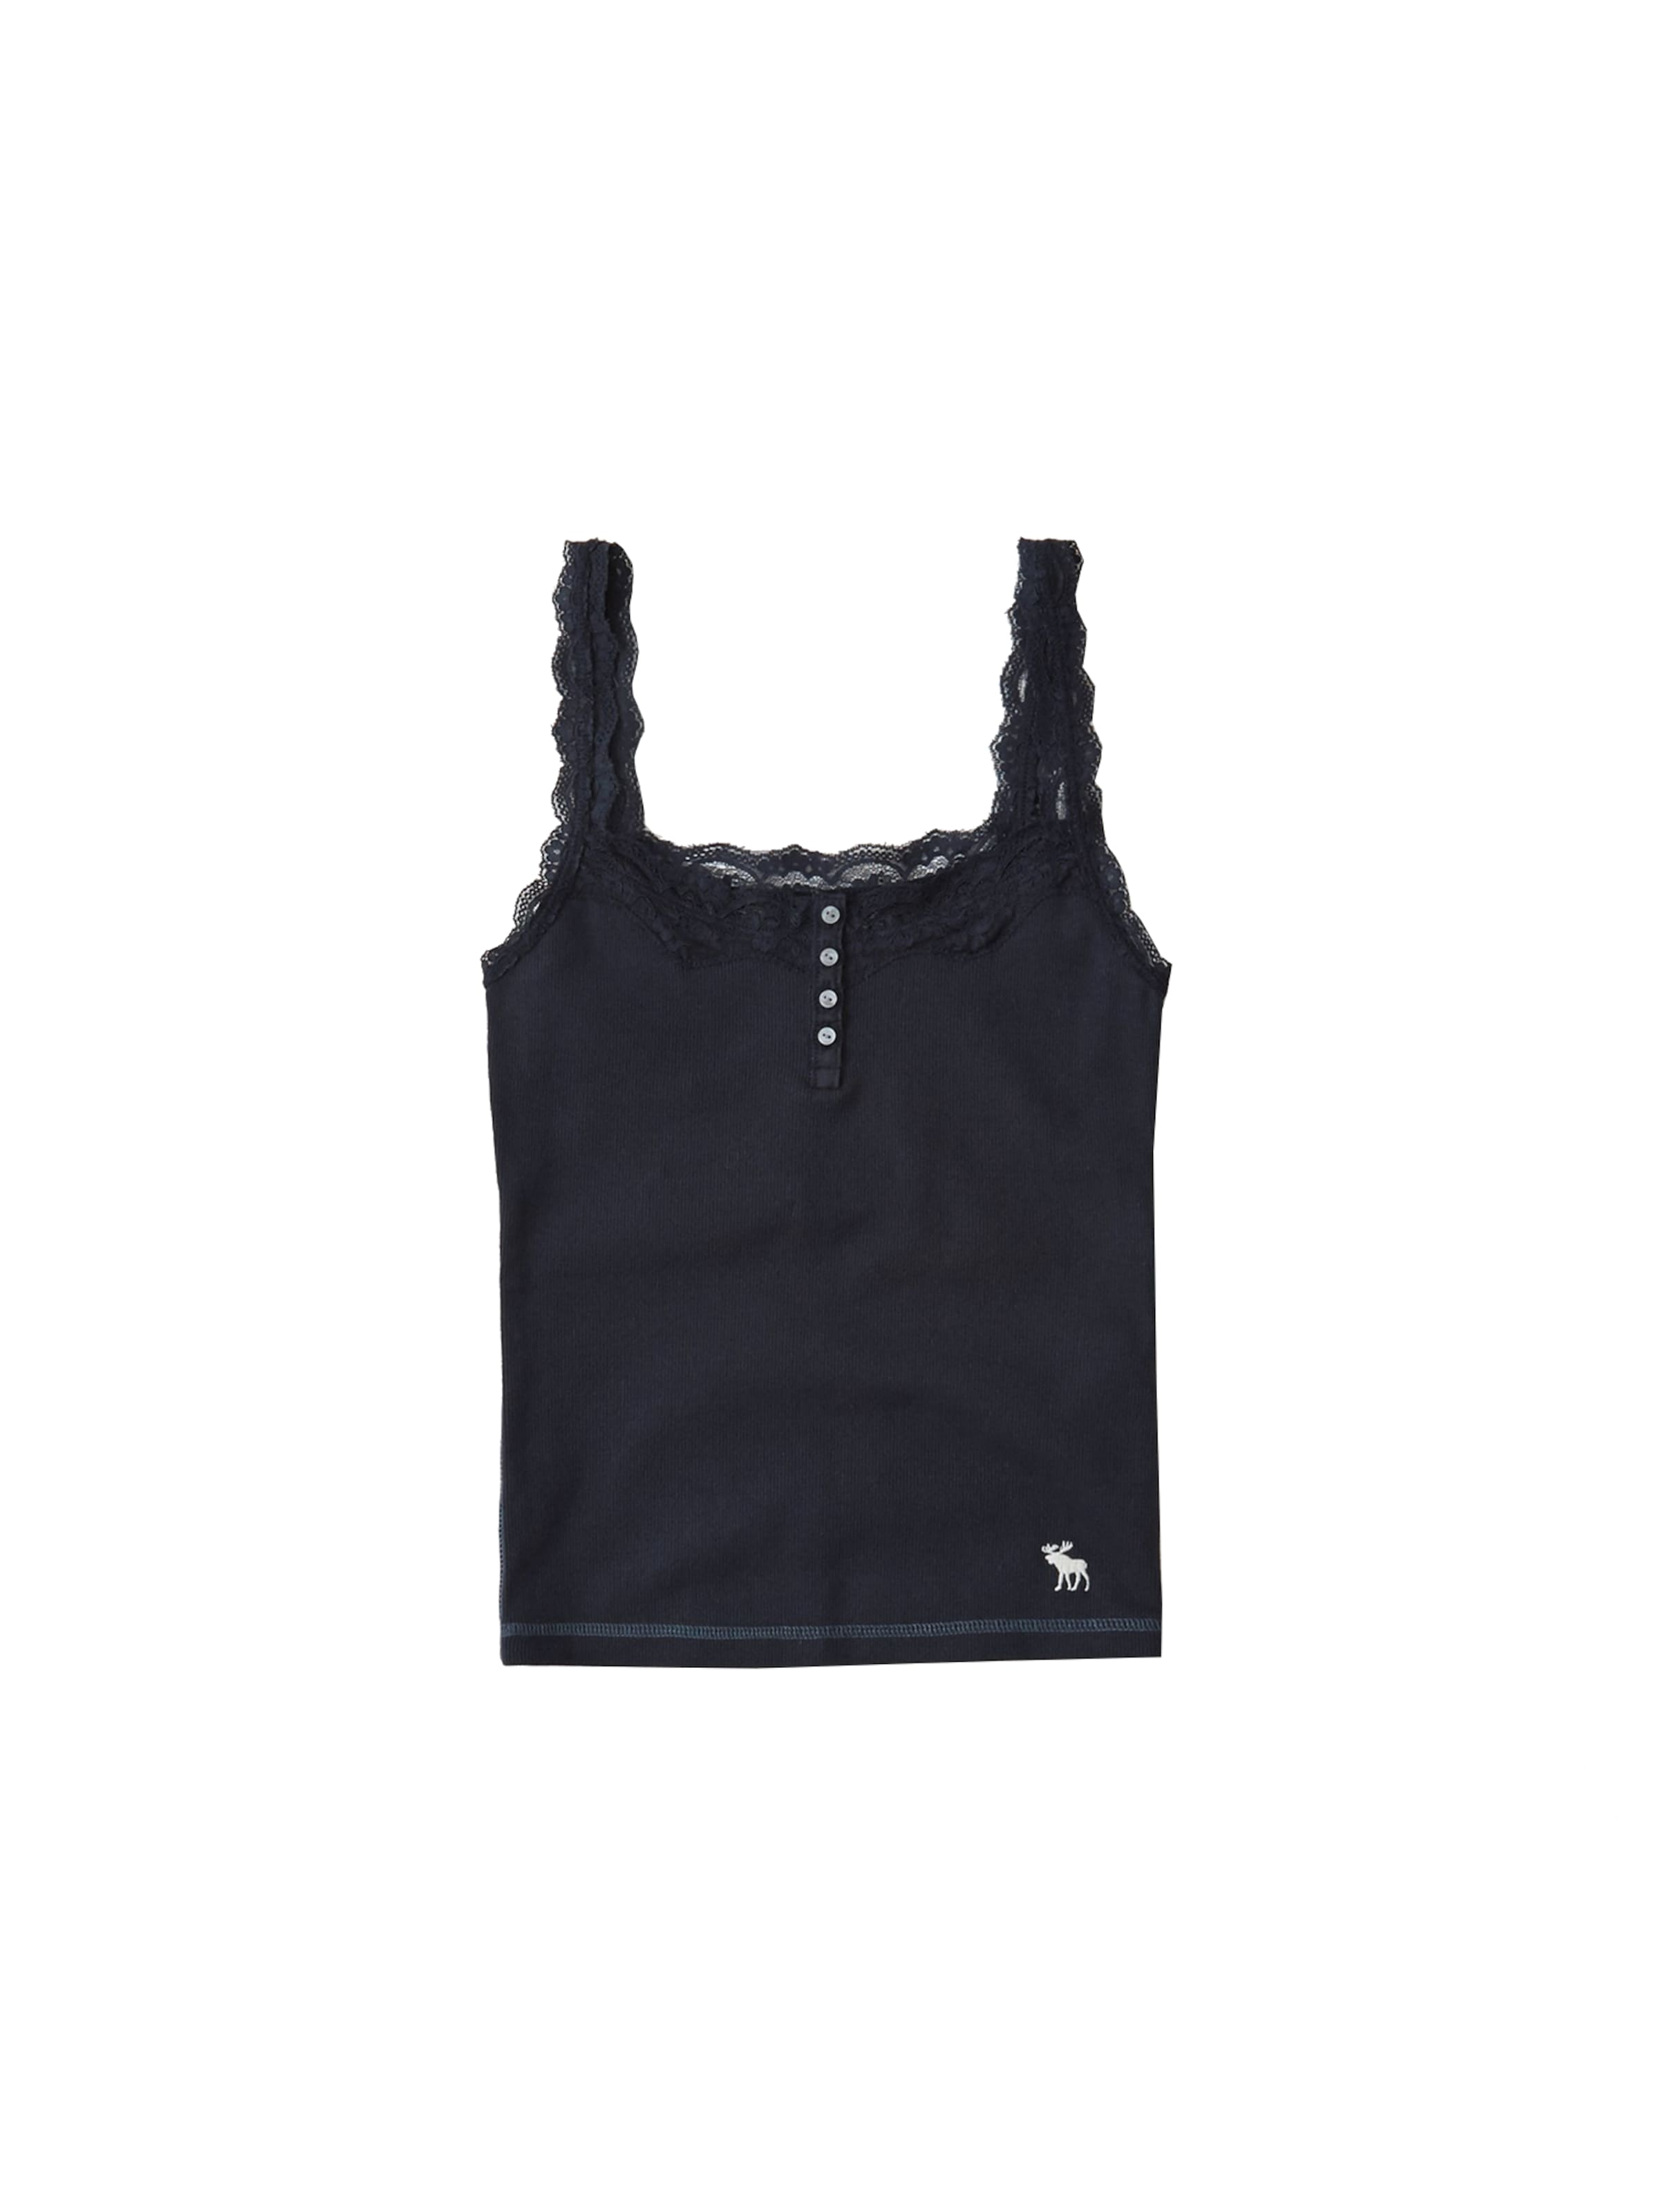 Cami' Lace Abercrombieamp; Top Fitch Navy 'moose In 543jARScLq